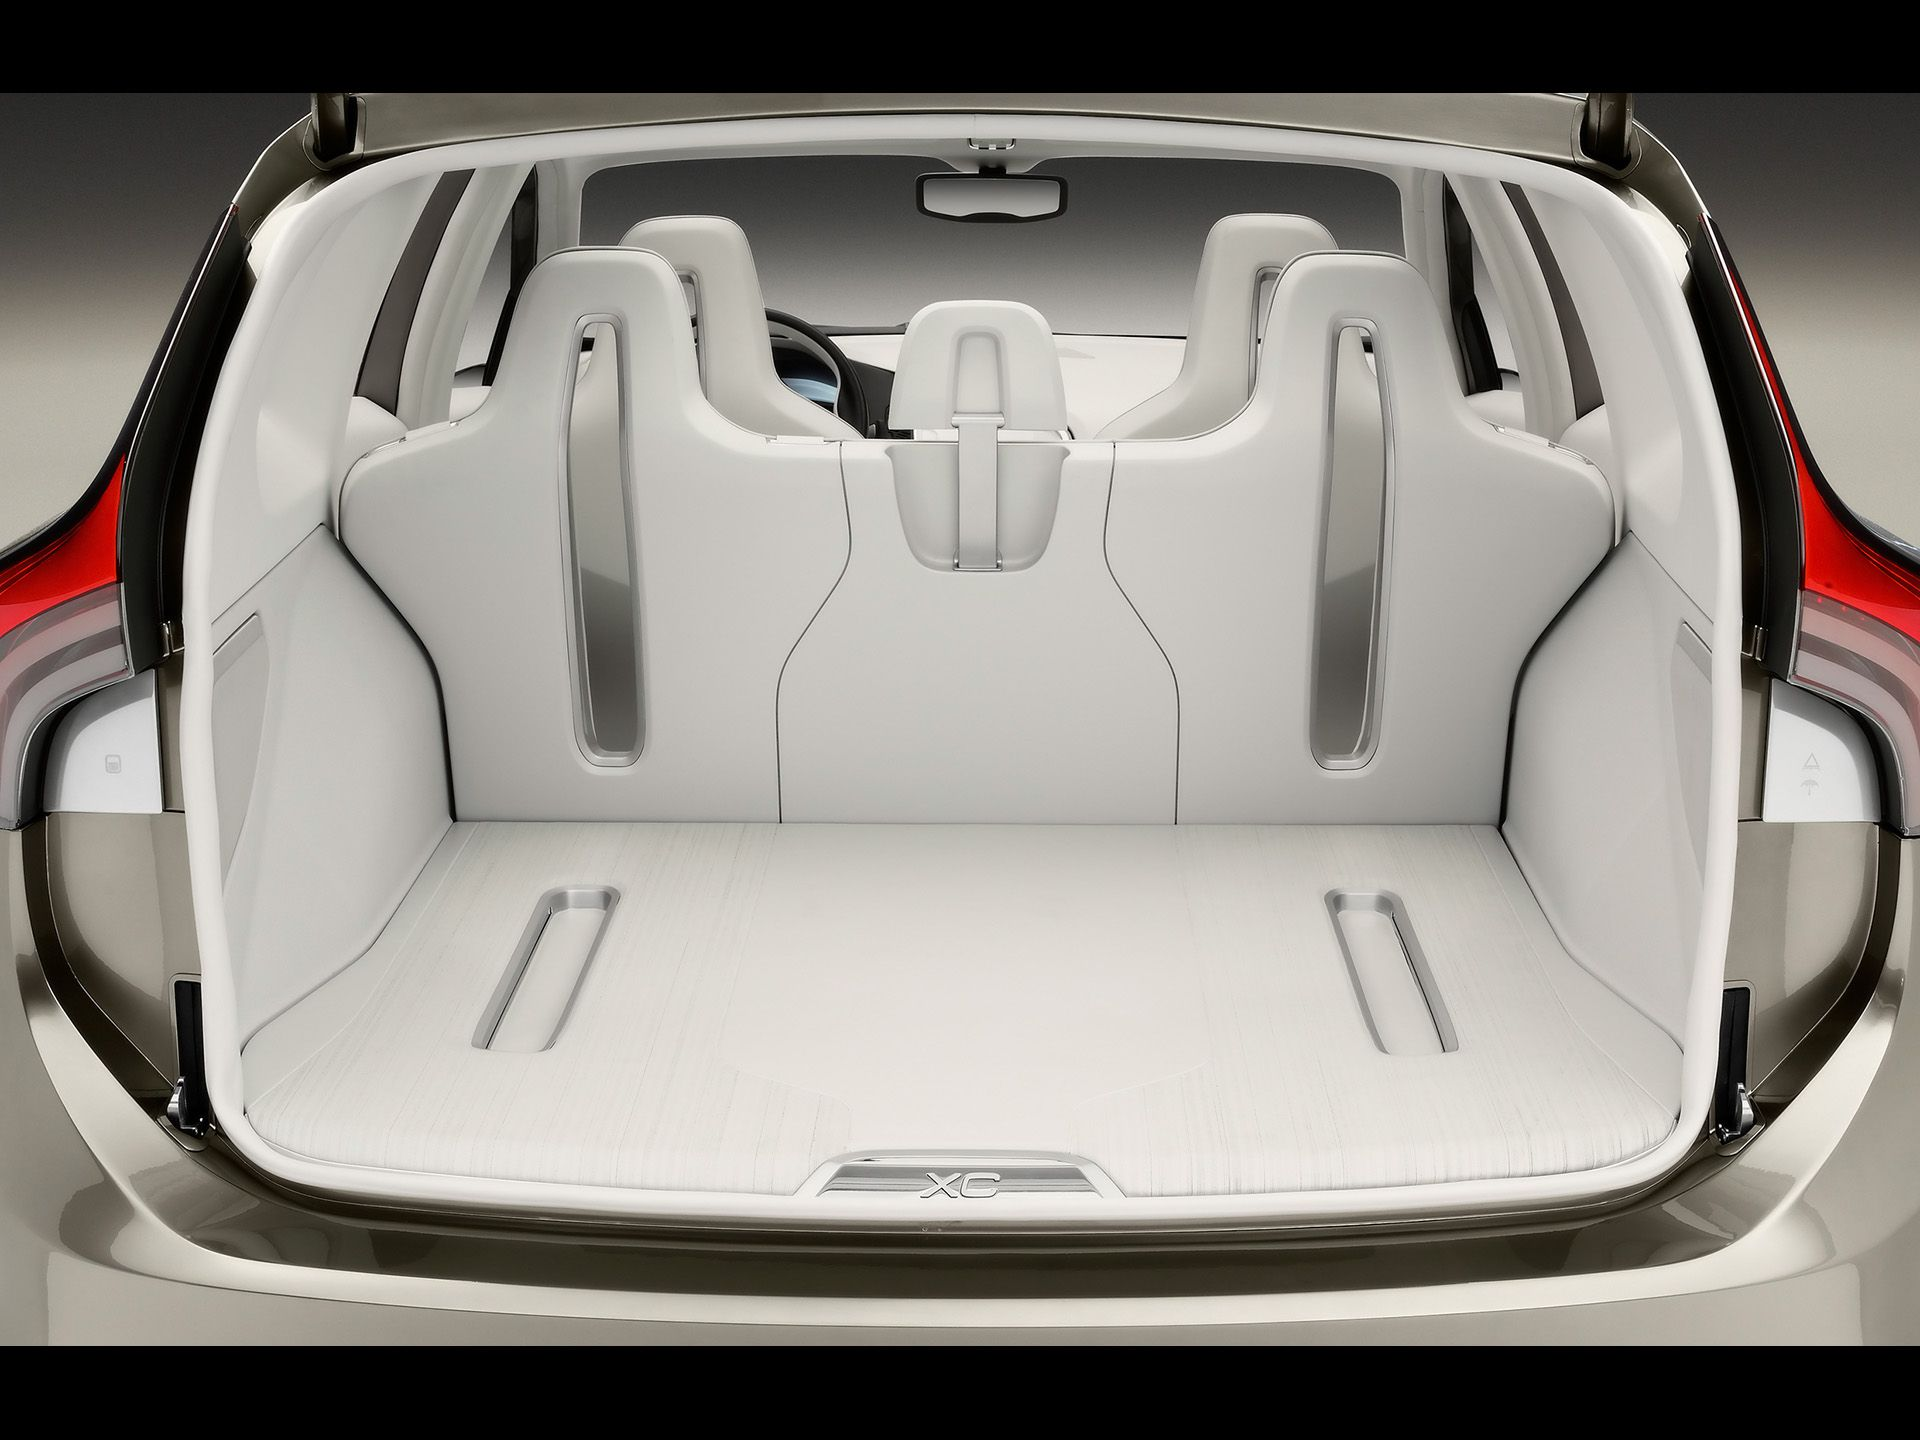 2007 Volvo Xc60 Concept Cargo Space With Centre Head Restraint In Use 1920x1440 Wallpaper Volvo Xc60 Volvo Sports Car